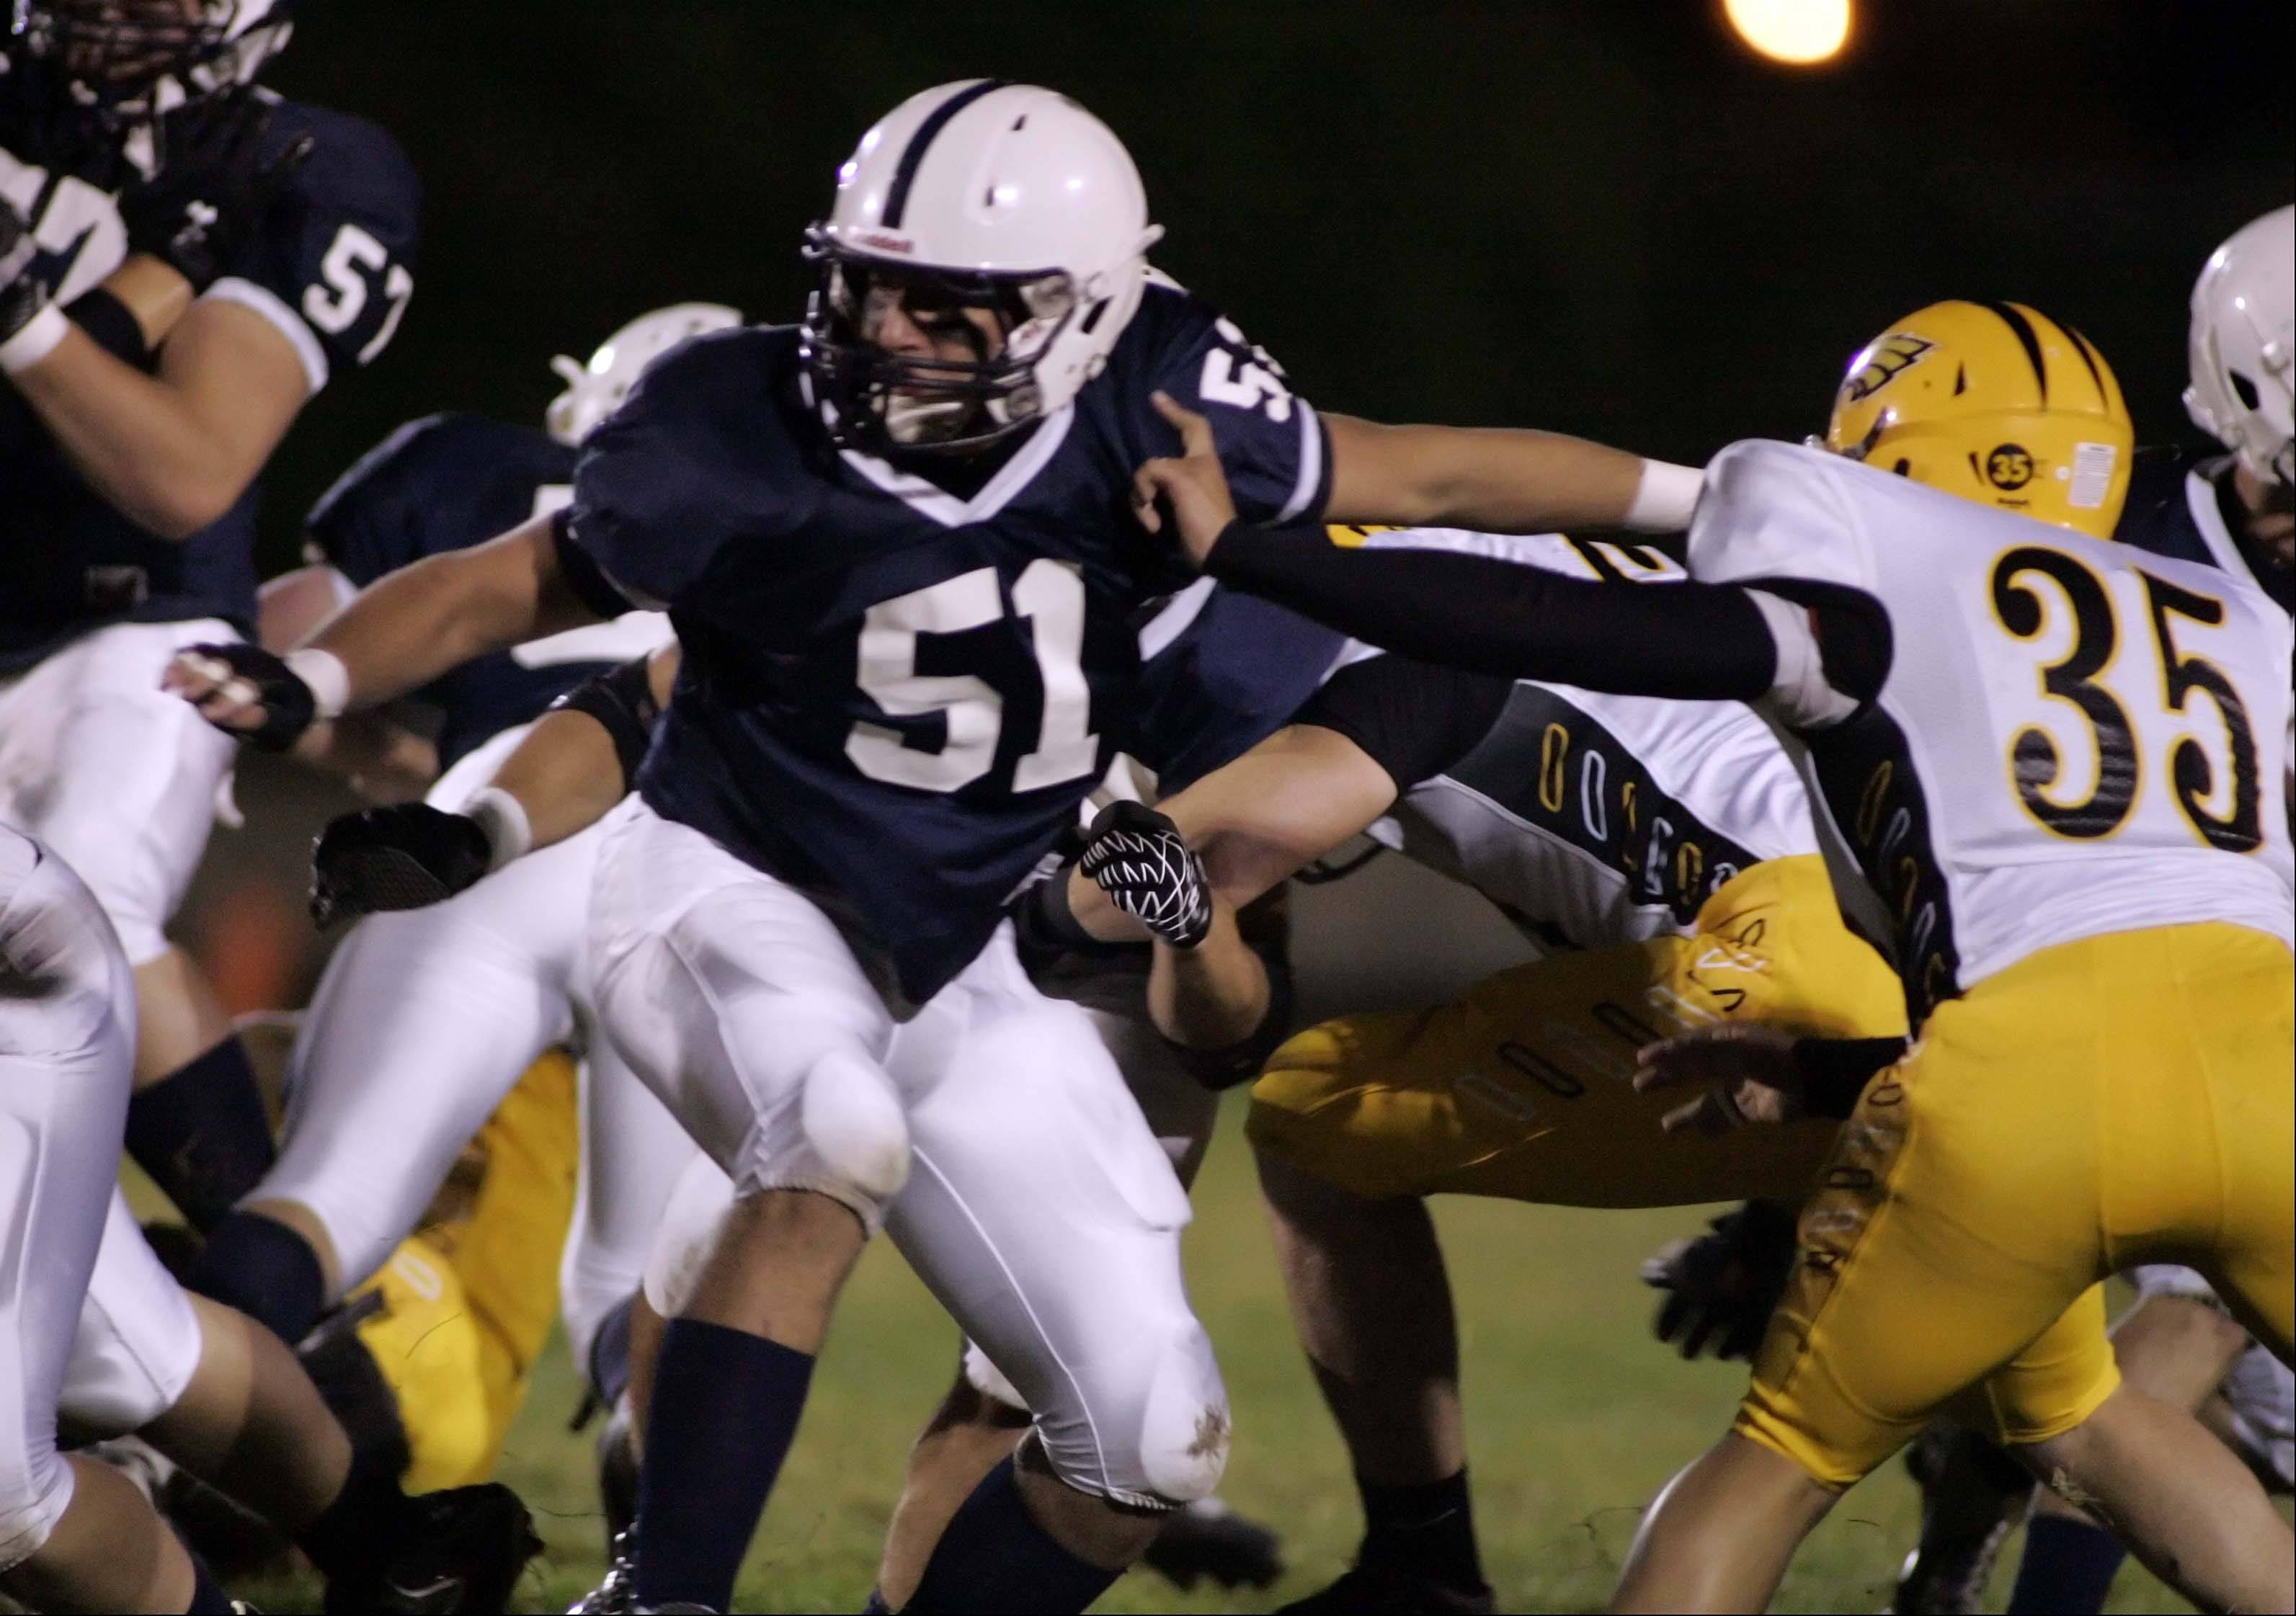 Senior Kyle Matthiesen (51) had been a big part of the Cary-Grove offensive line this season.